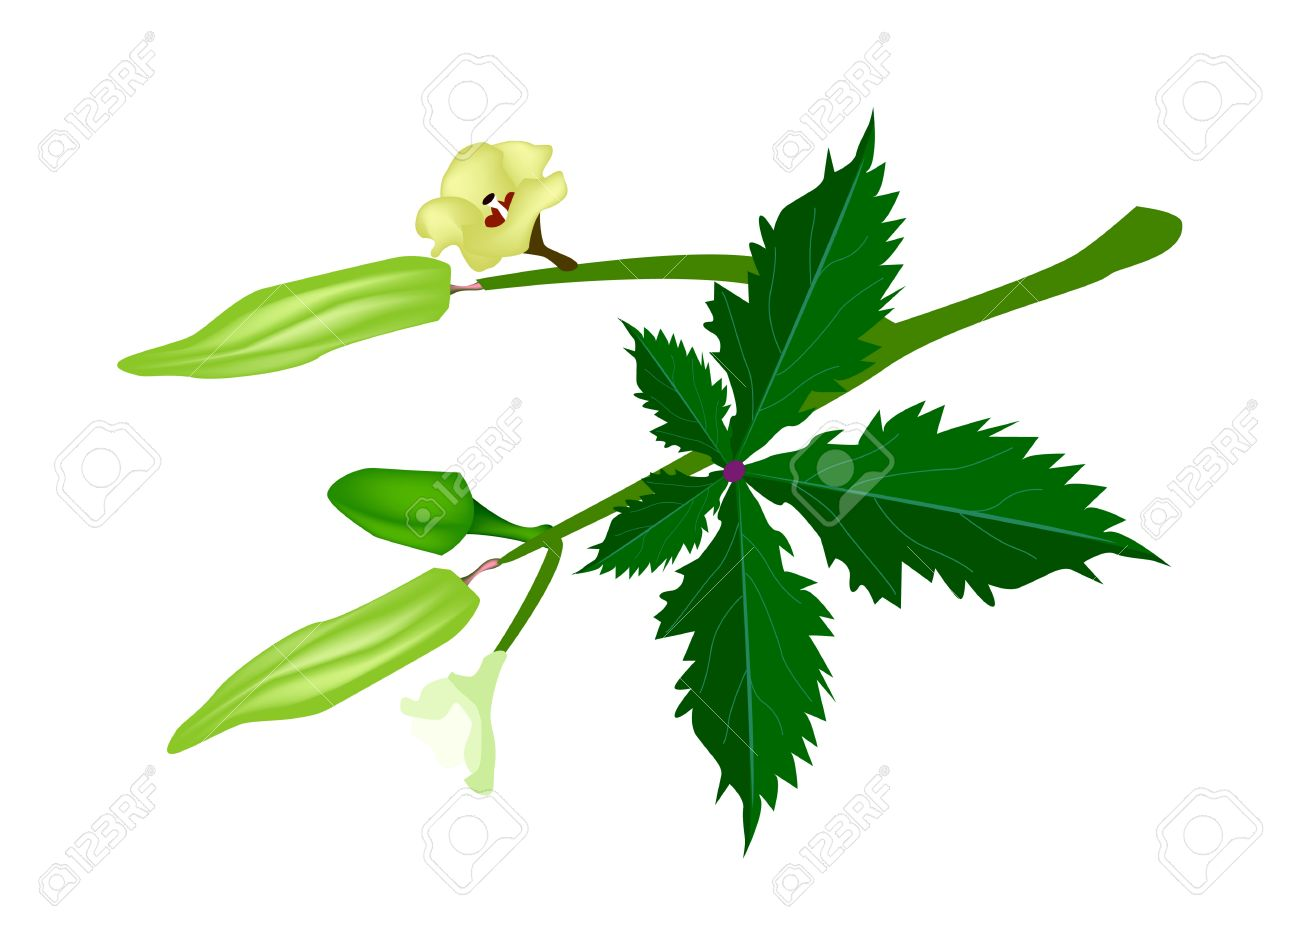 Okra Blossom Images & Stock Pictures. Royalty Free Okra Blossom.